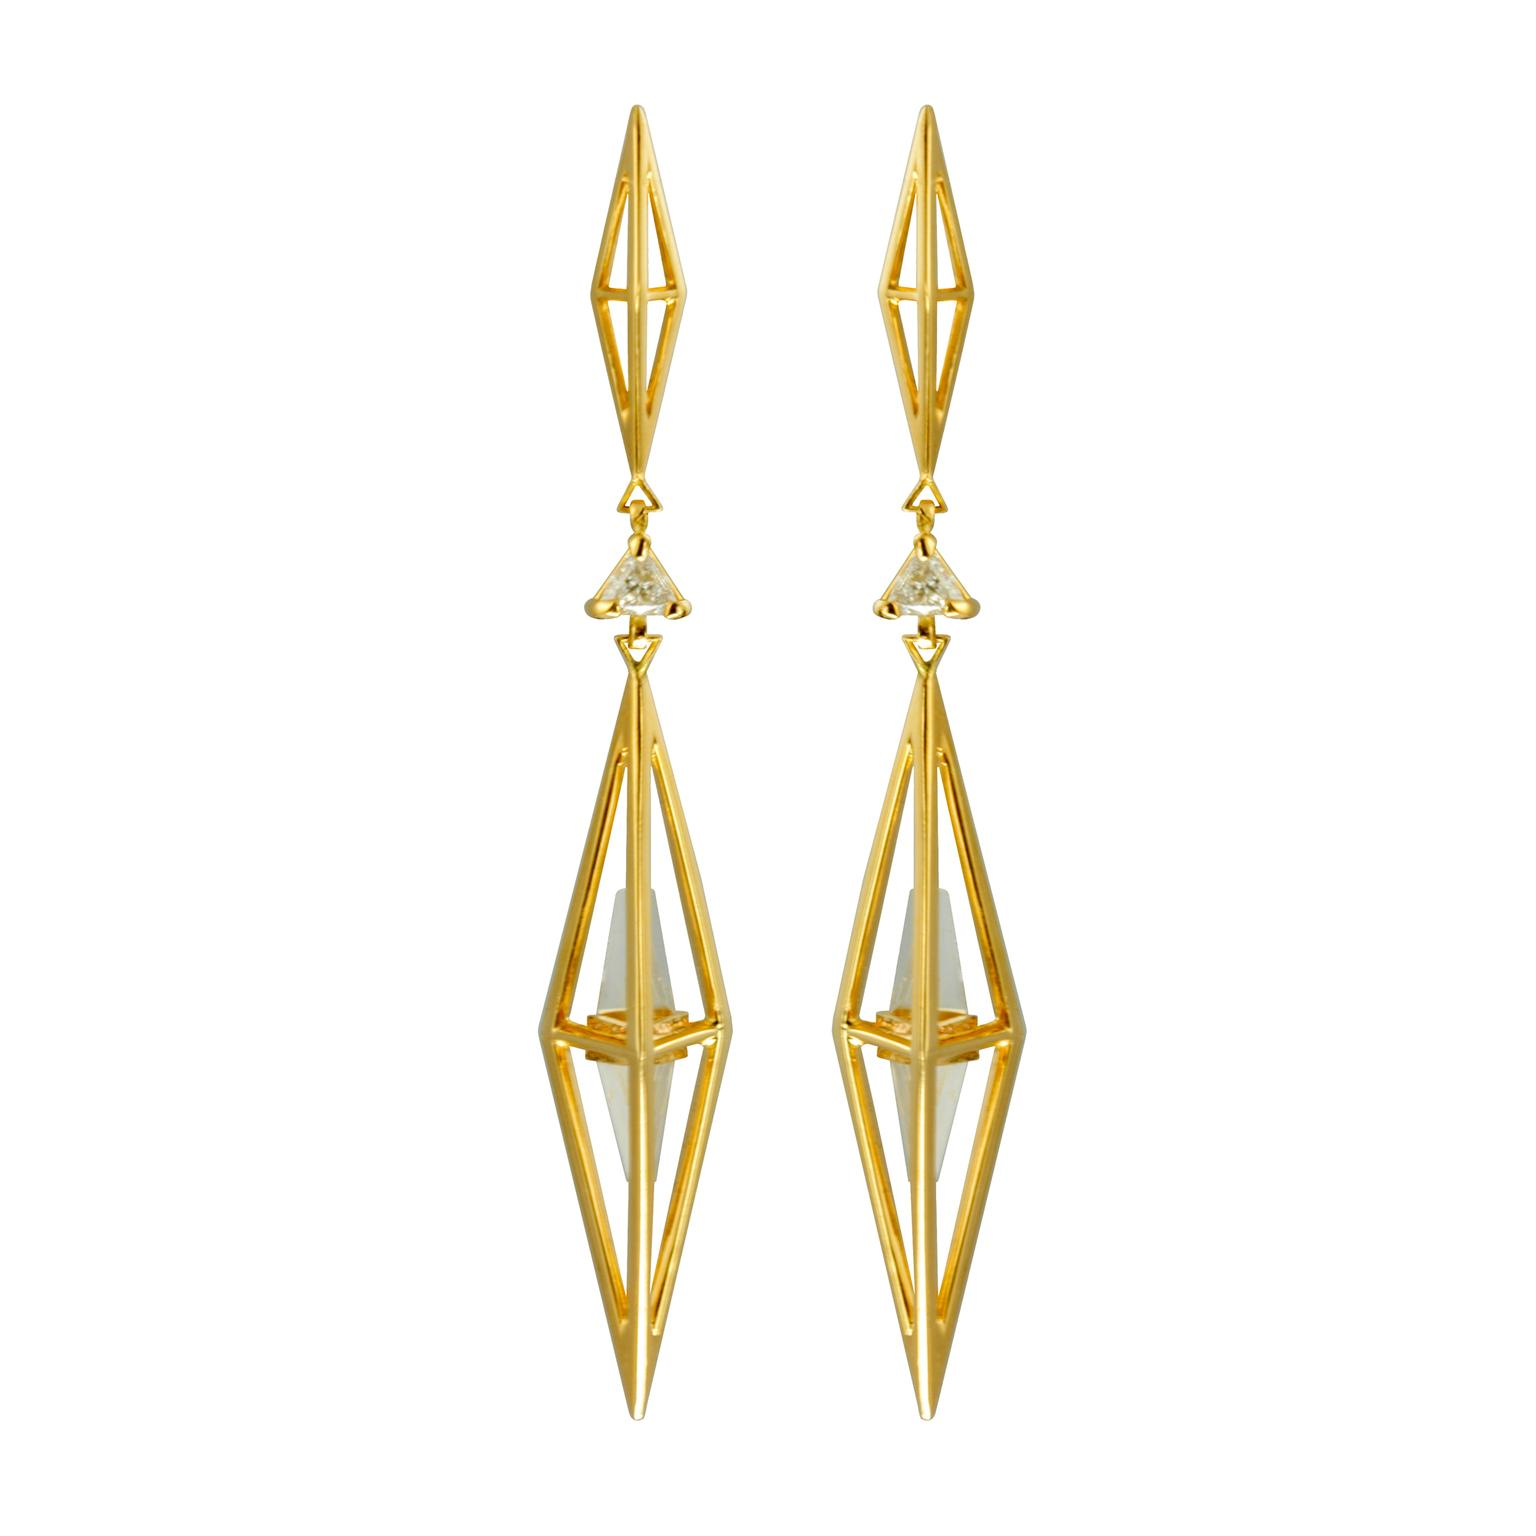 KATTRI Large Tetrahedron earrings